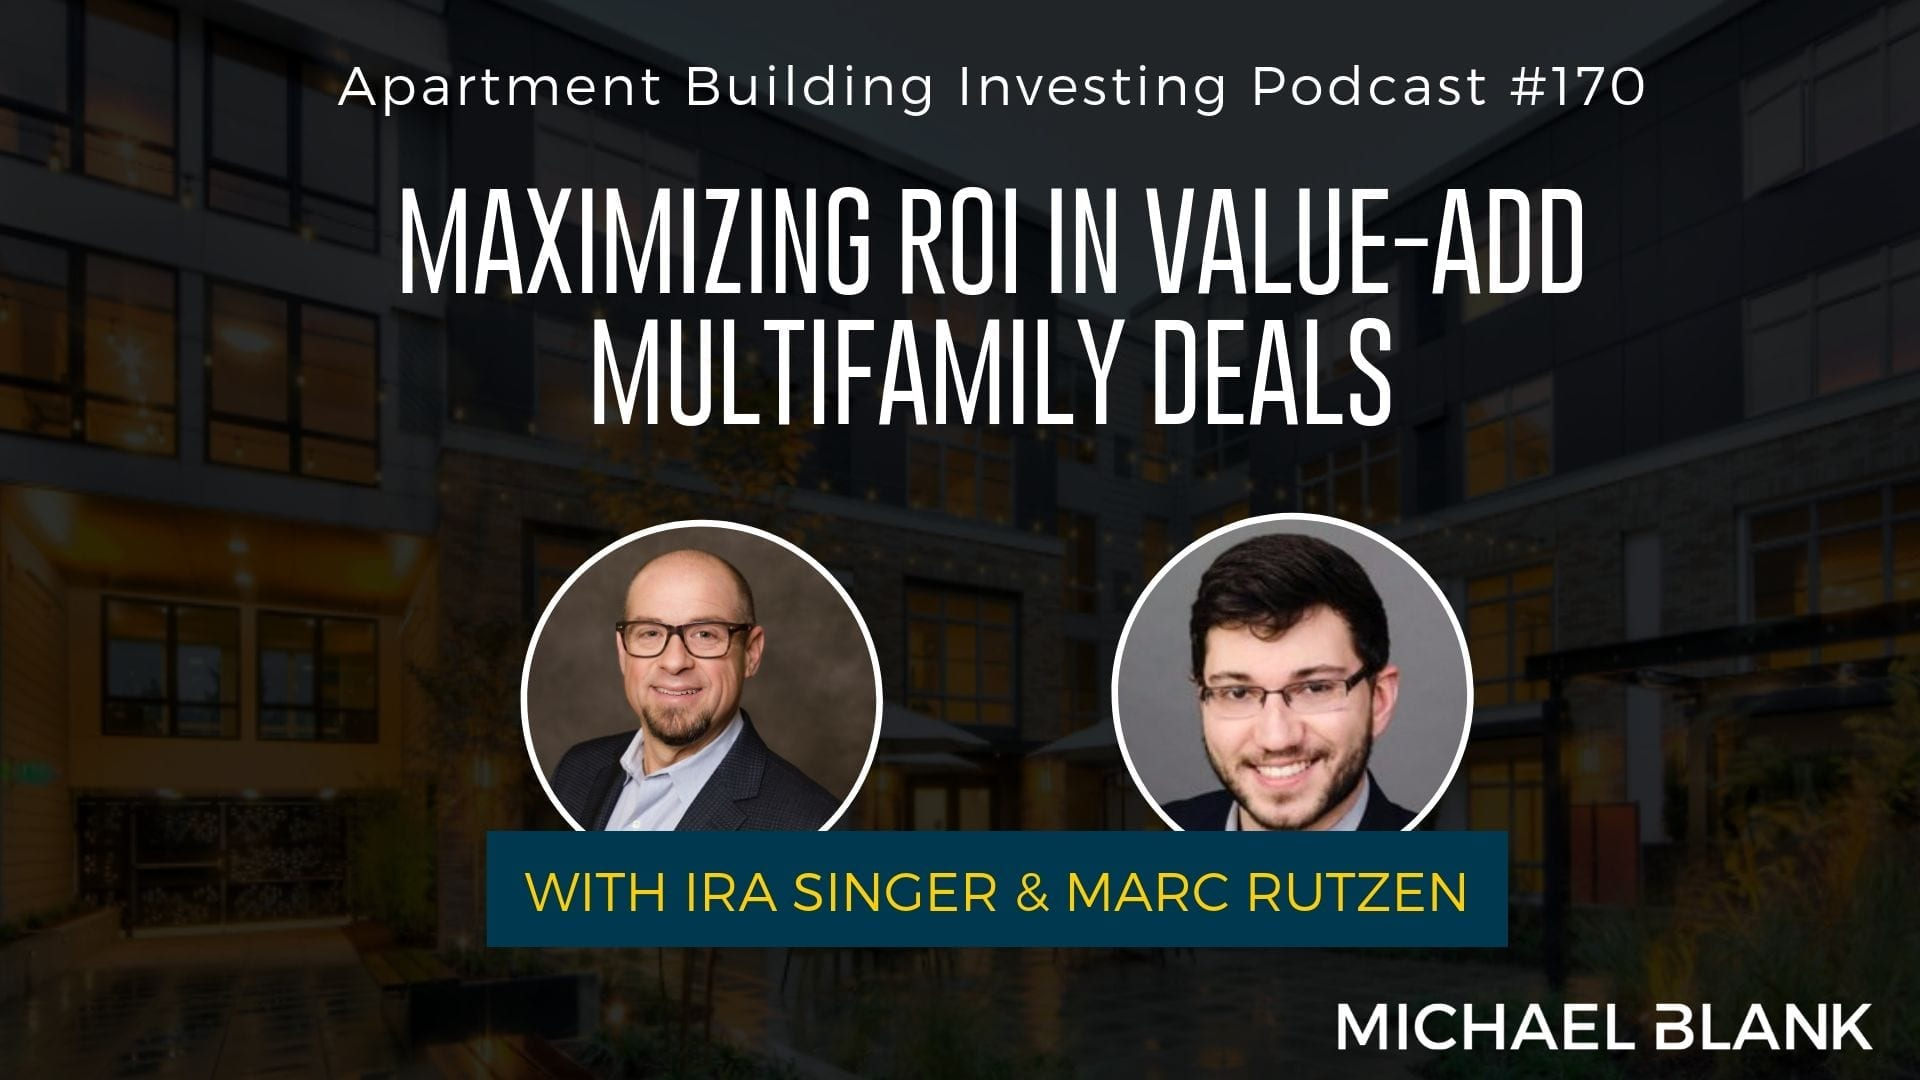 MB 170: Maximizing ROI in Value-Add Multifamily Deals – With Ira Singer & Marc Rutzen